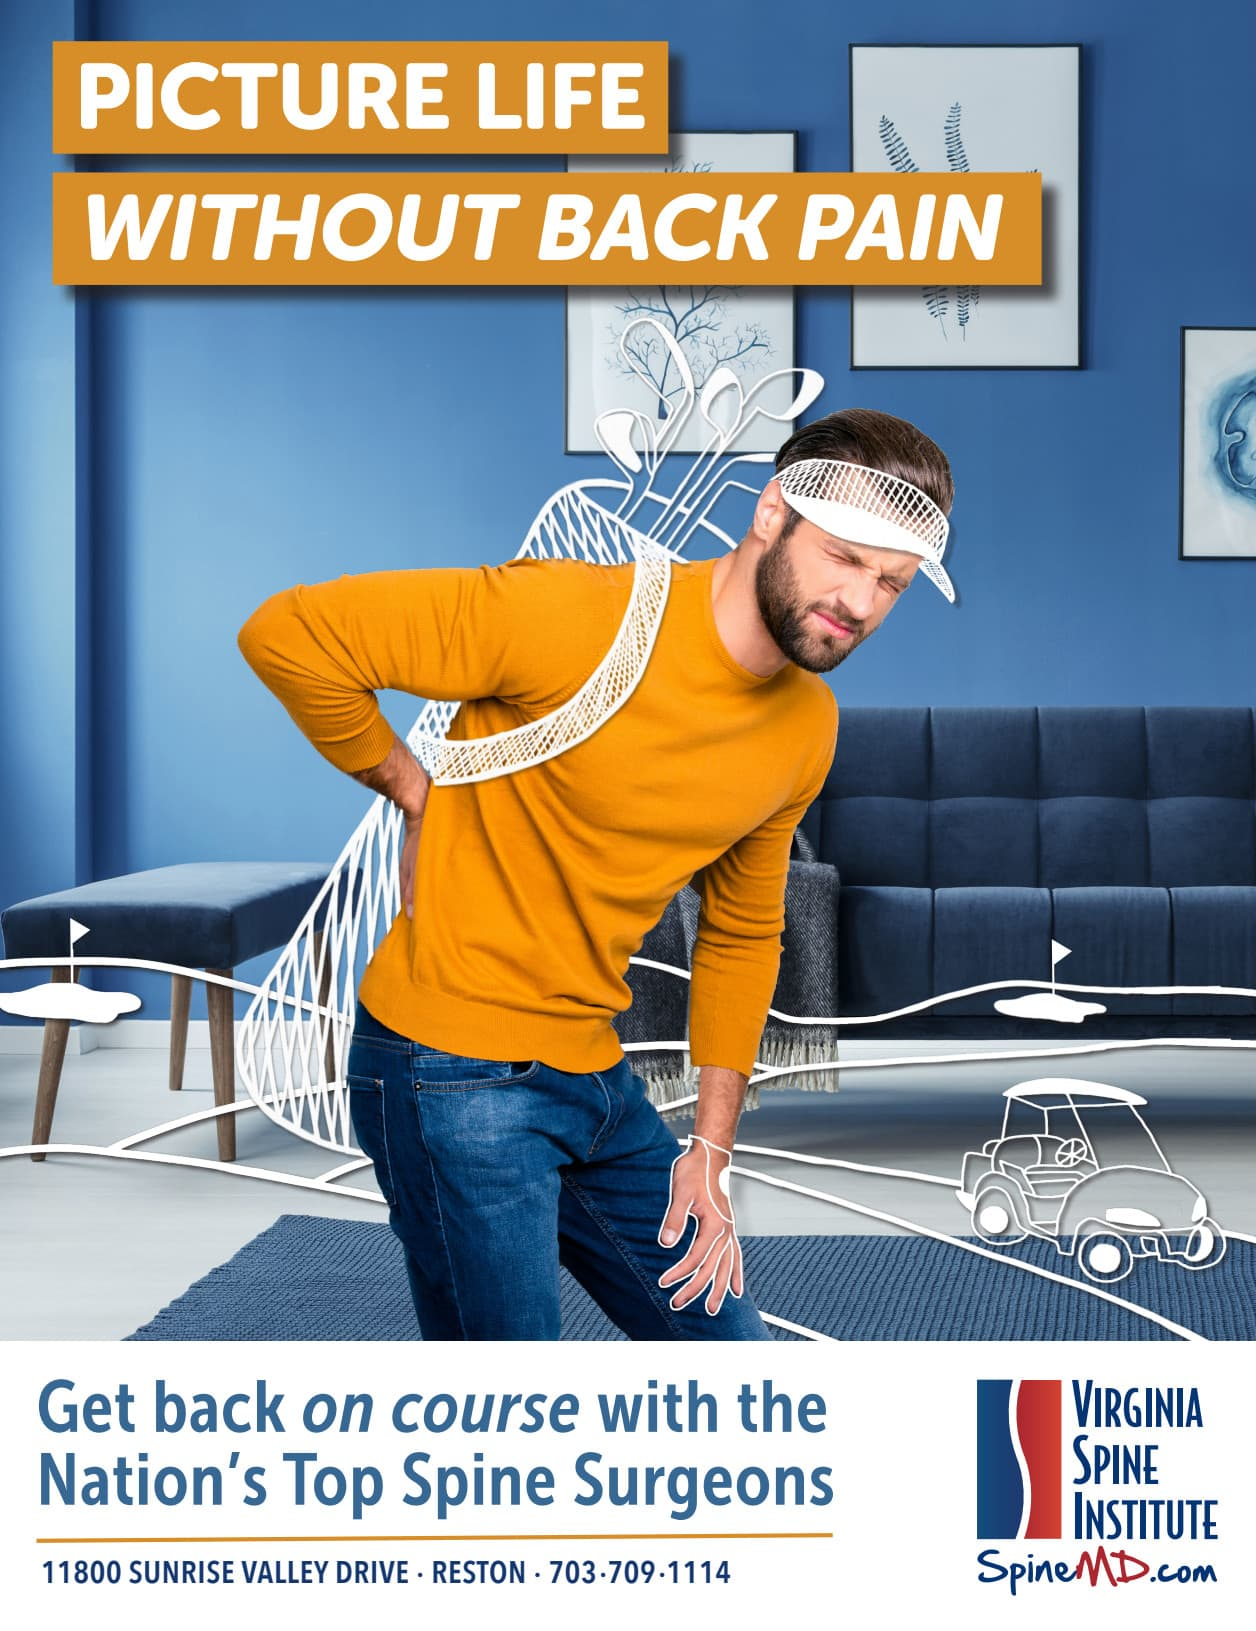 Virginia Spine Institute Advertisements